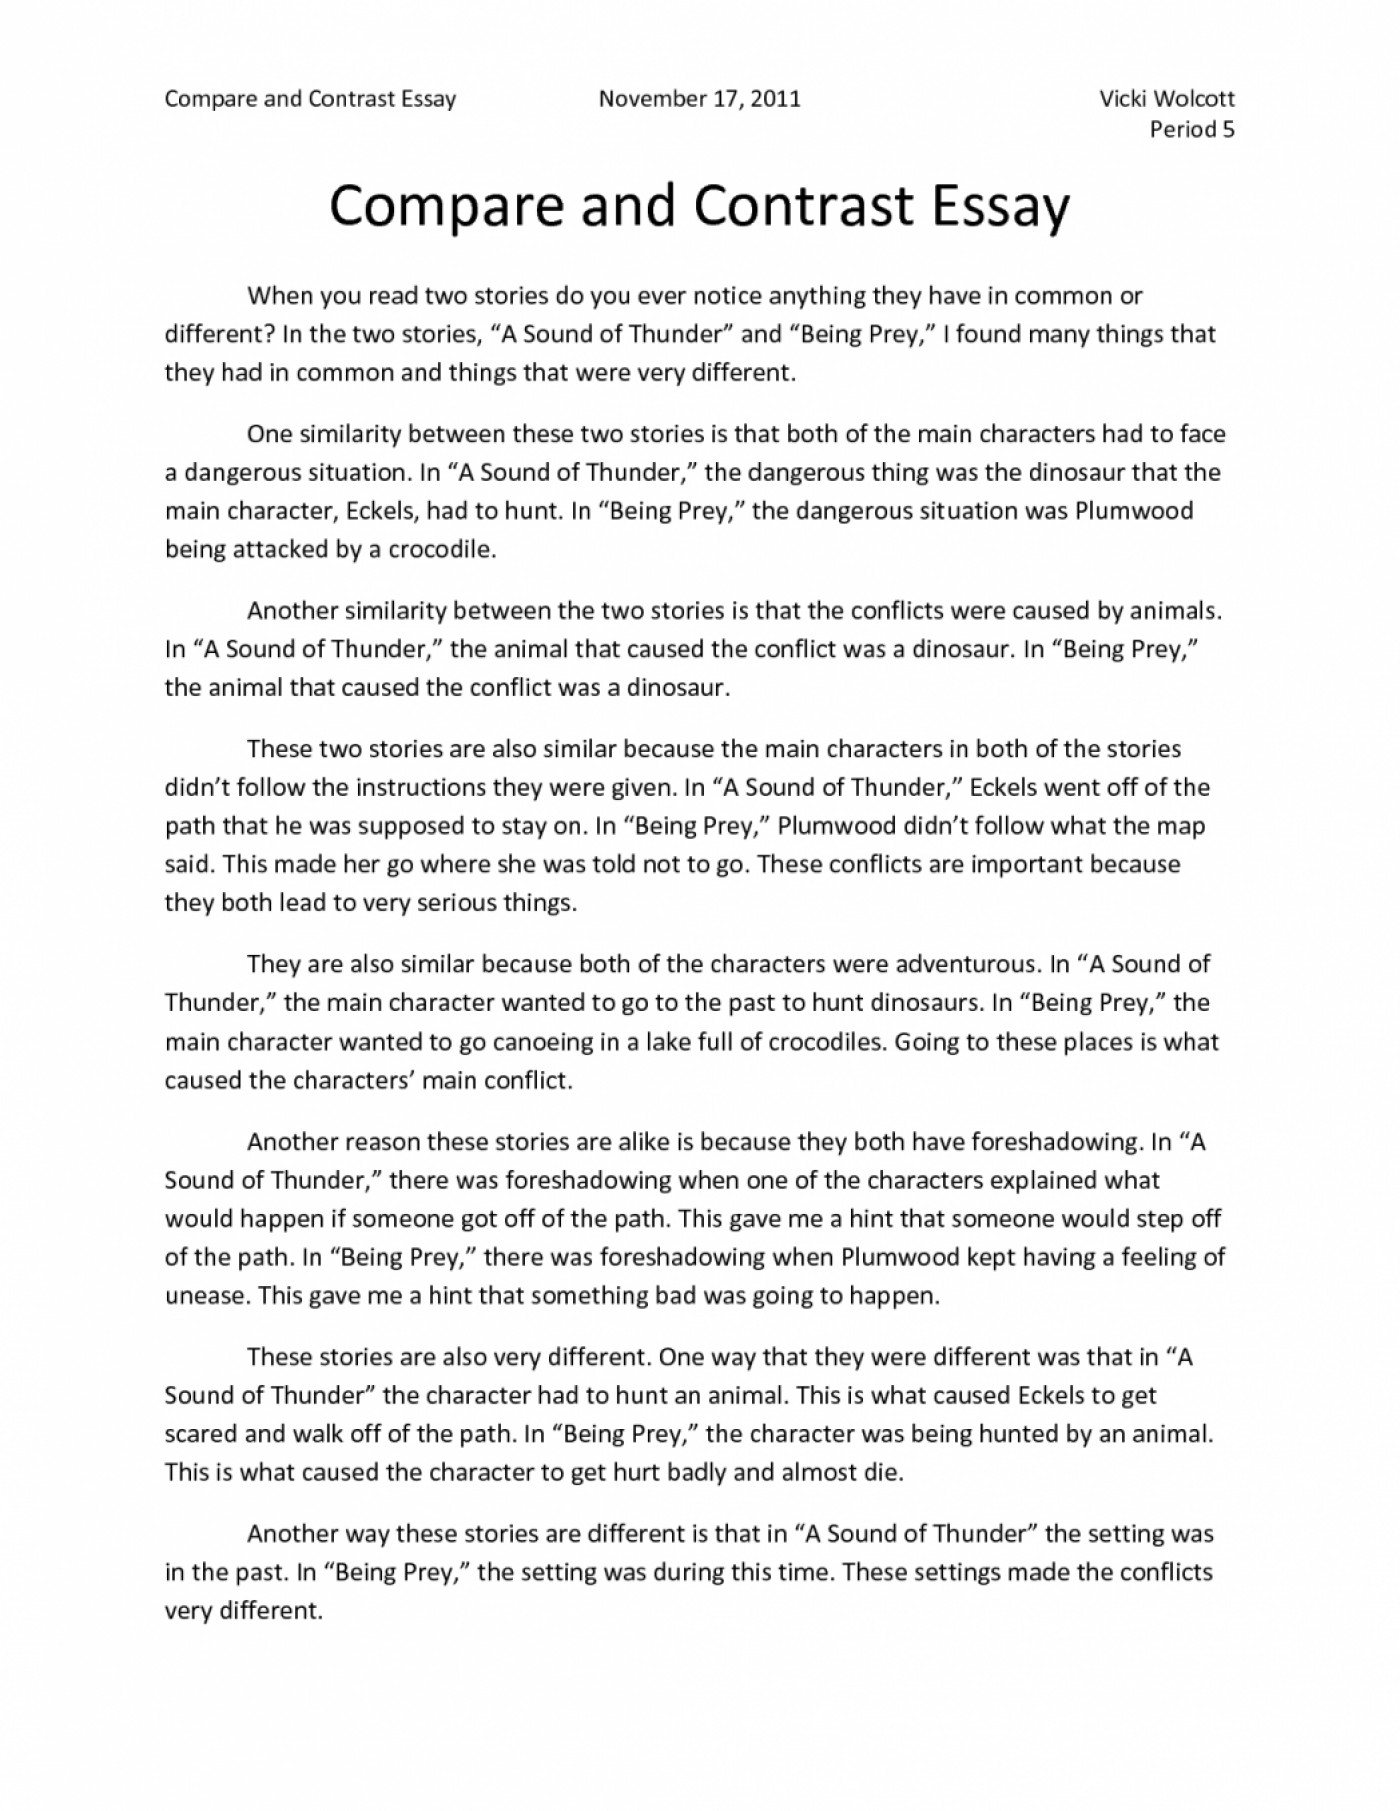 003 Compare And Contrast Essay Topics Example Good For College Students Sample Research Paper Writing Argumentative Fantastic Elementary Ielts 1400